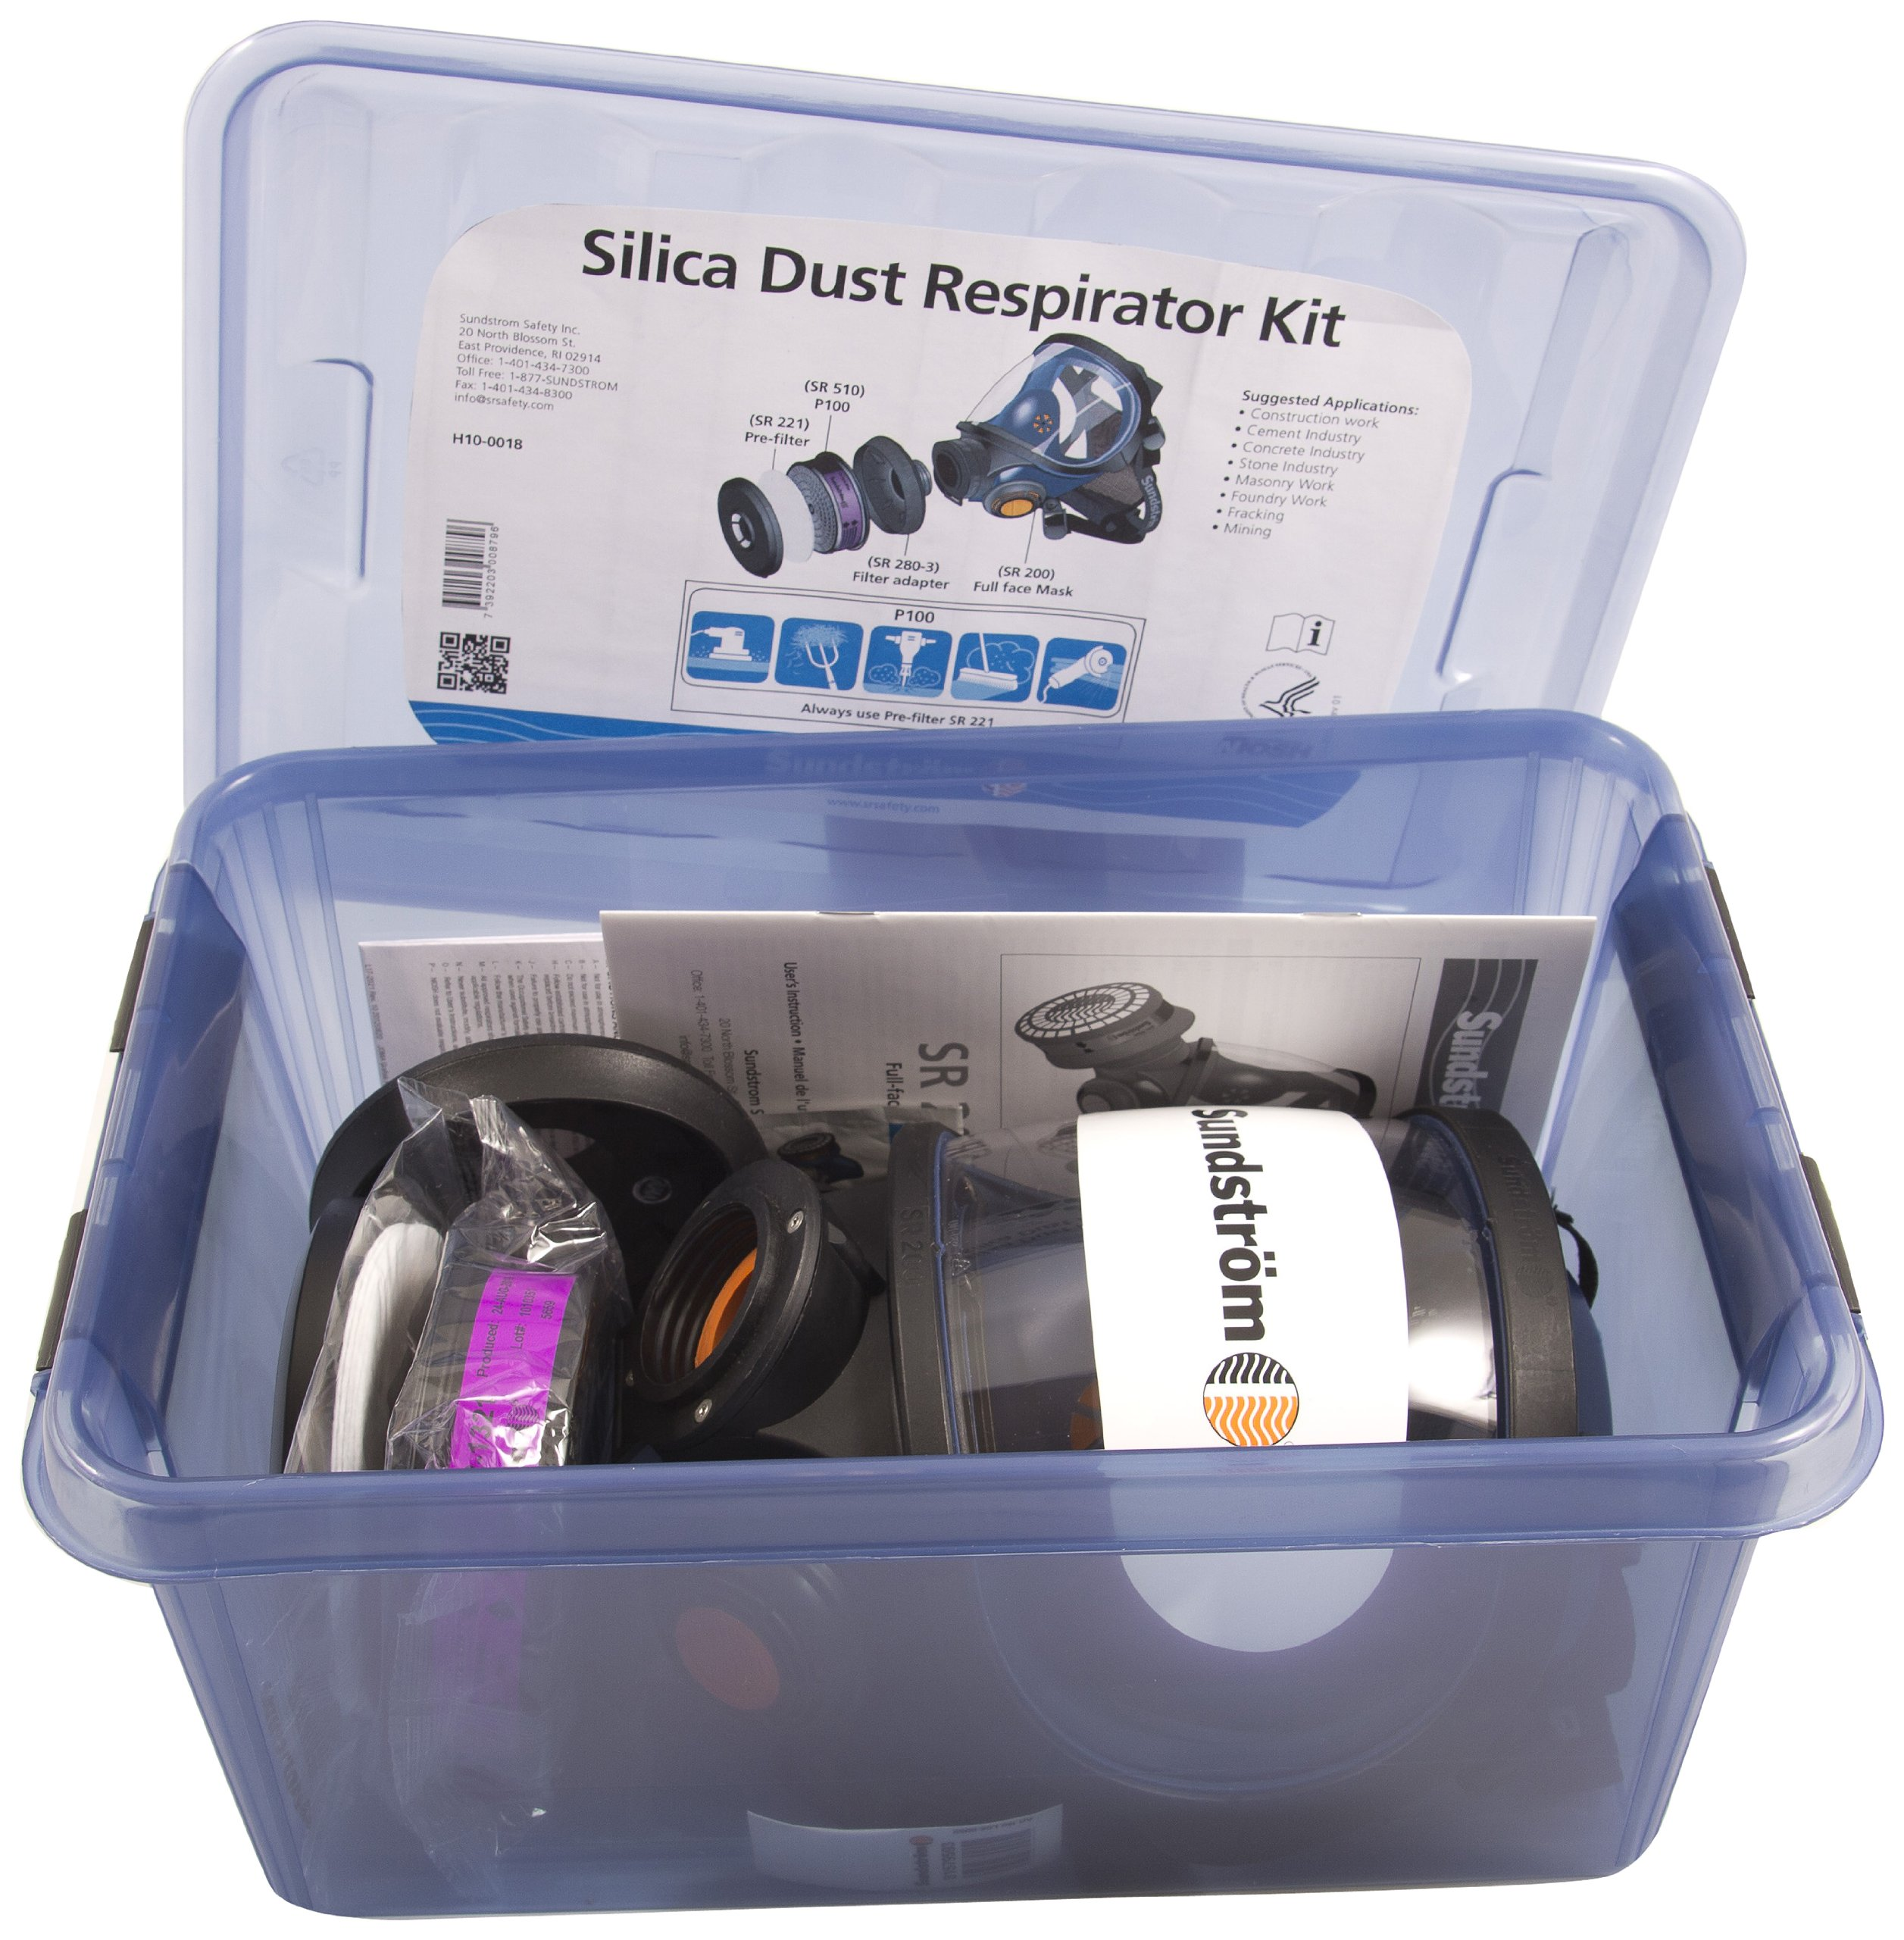 Sundstrom H10-0018 Silica Dust Respirator Kit with SR 200 Silicone Full Face Mask, P100/HE Particulate Filter and Prefilters